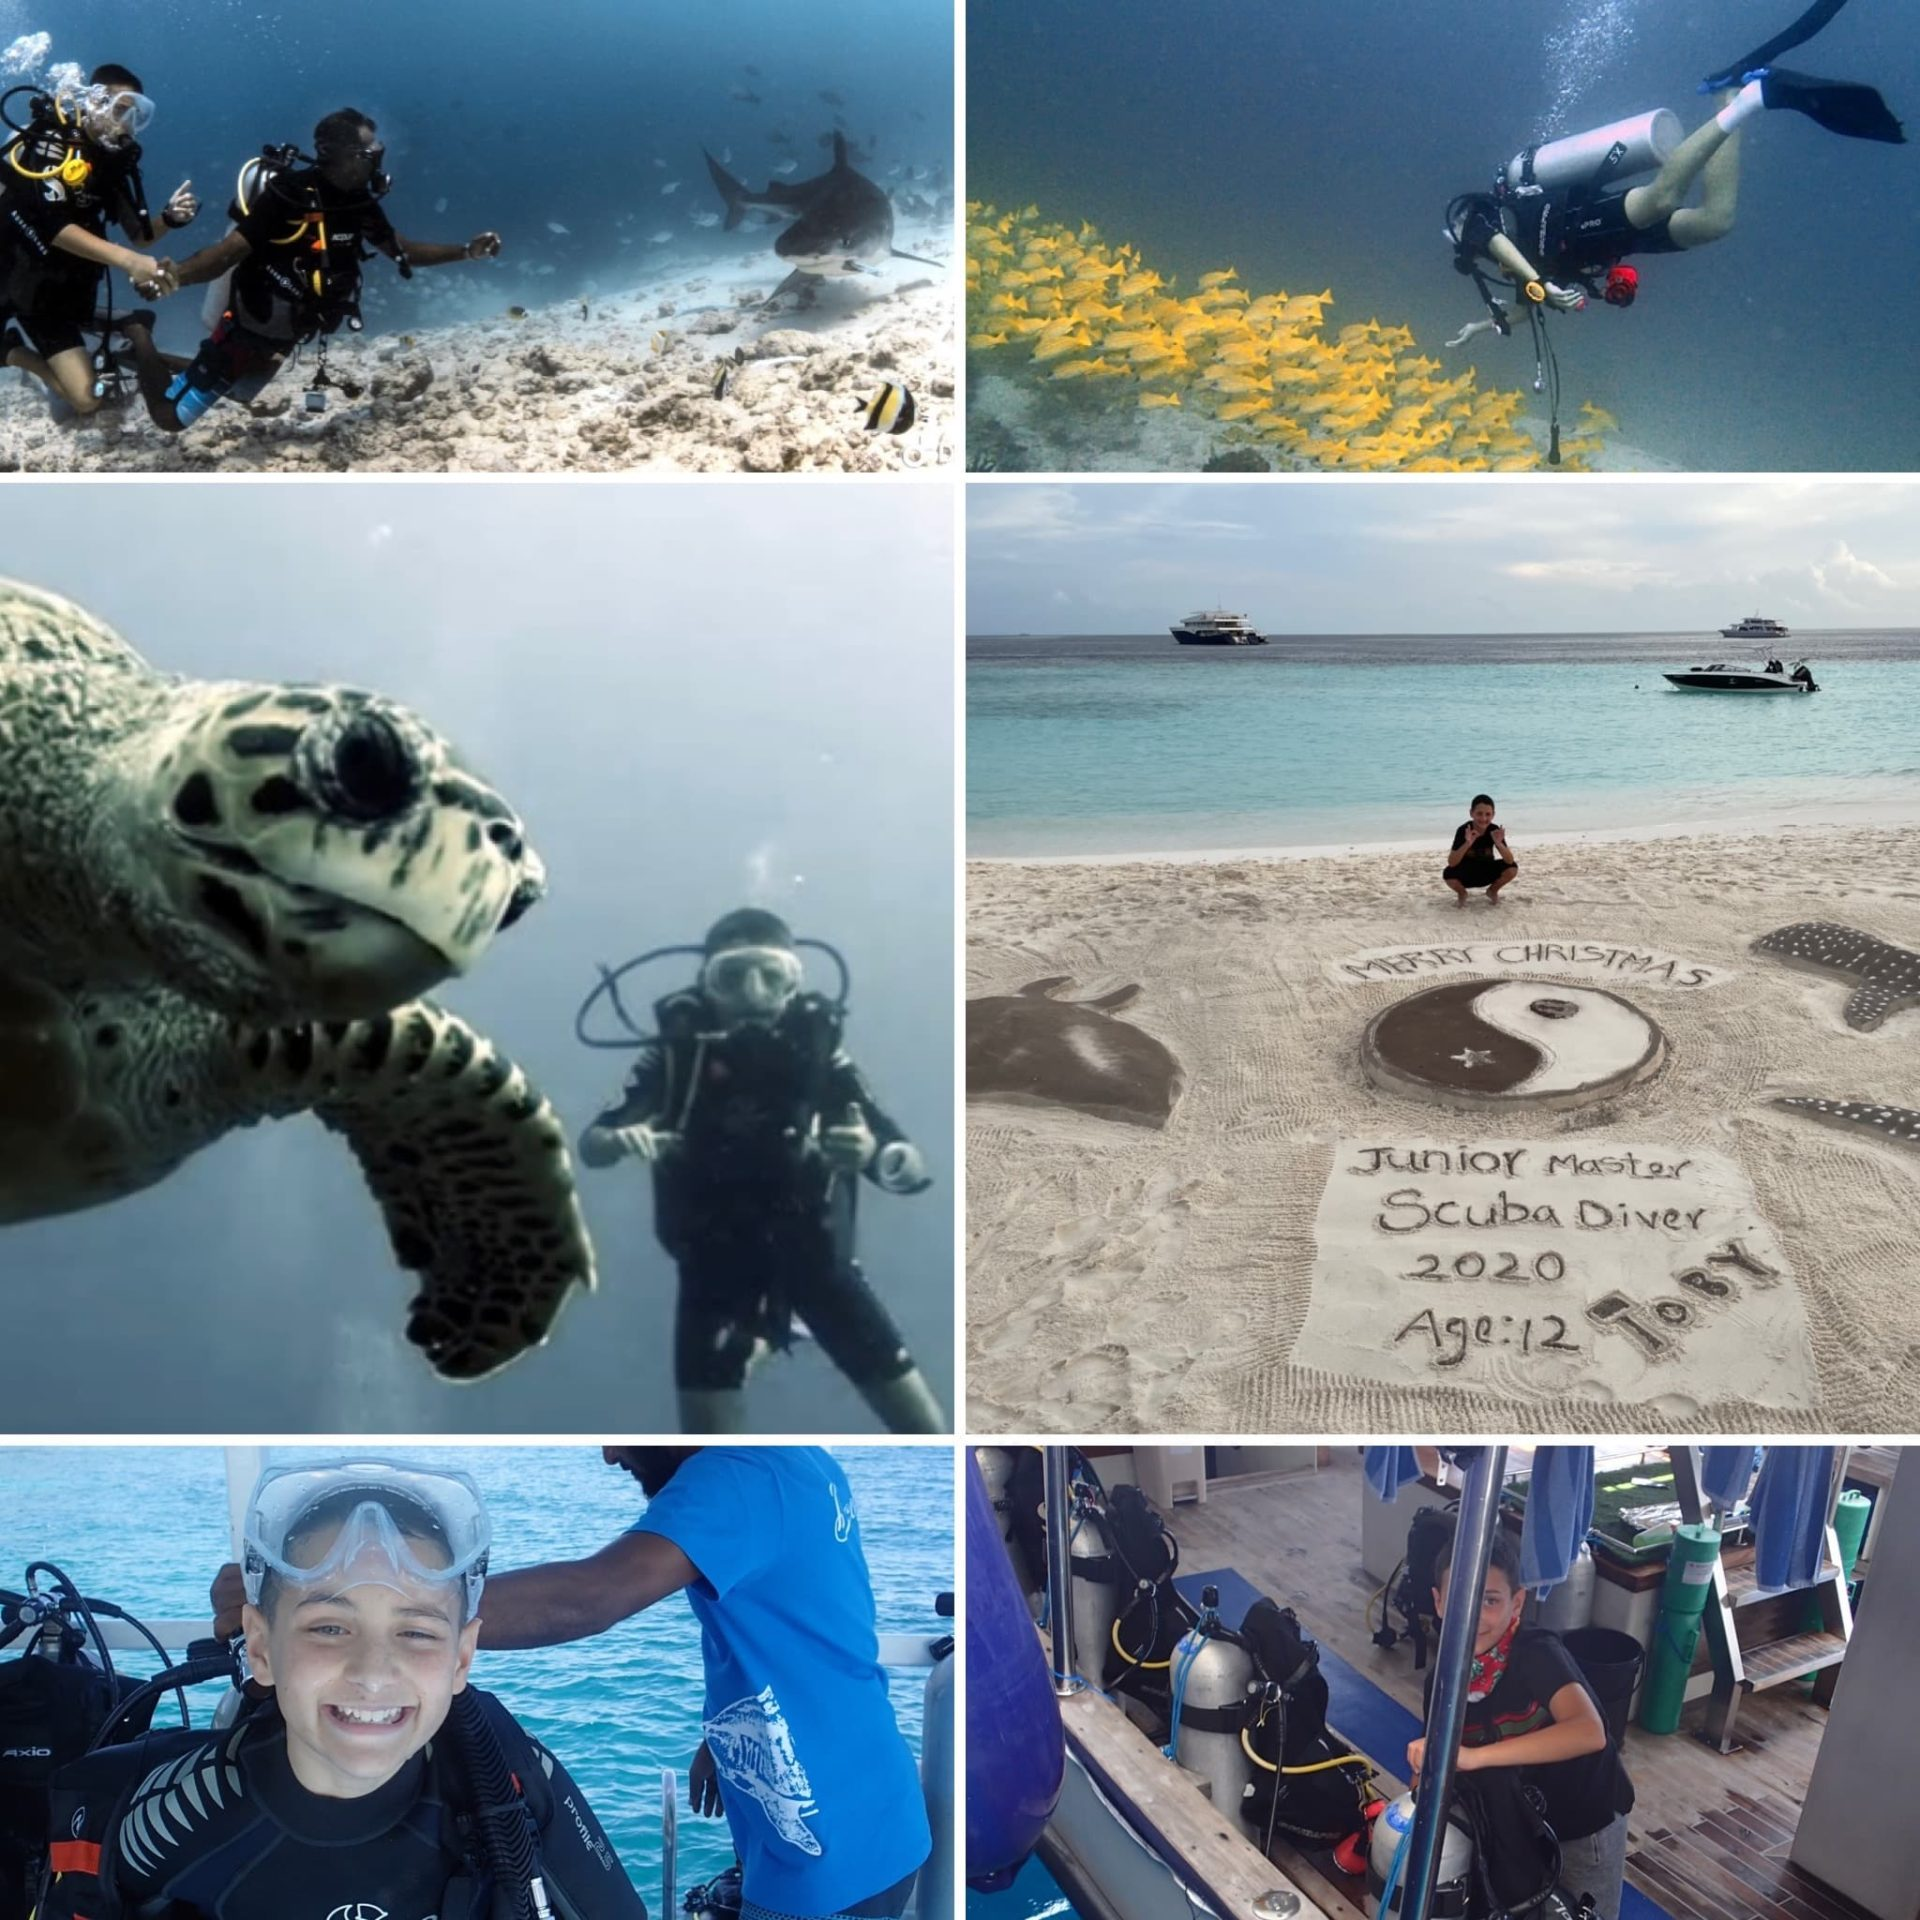 Toby Monteiro-Hourigan on fulfilling his dream of becoming the world's youngest Master Scuba Diver